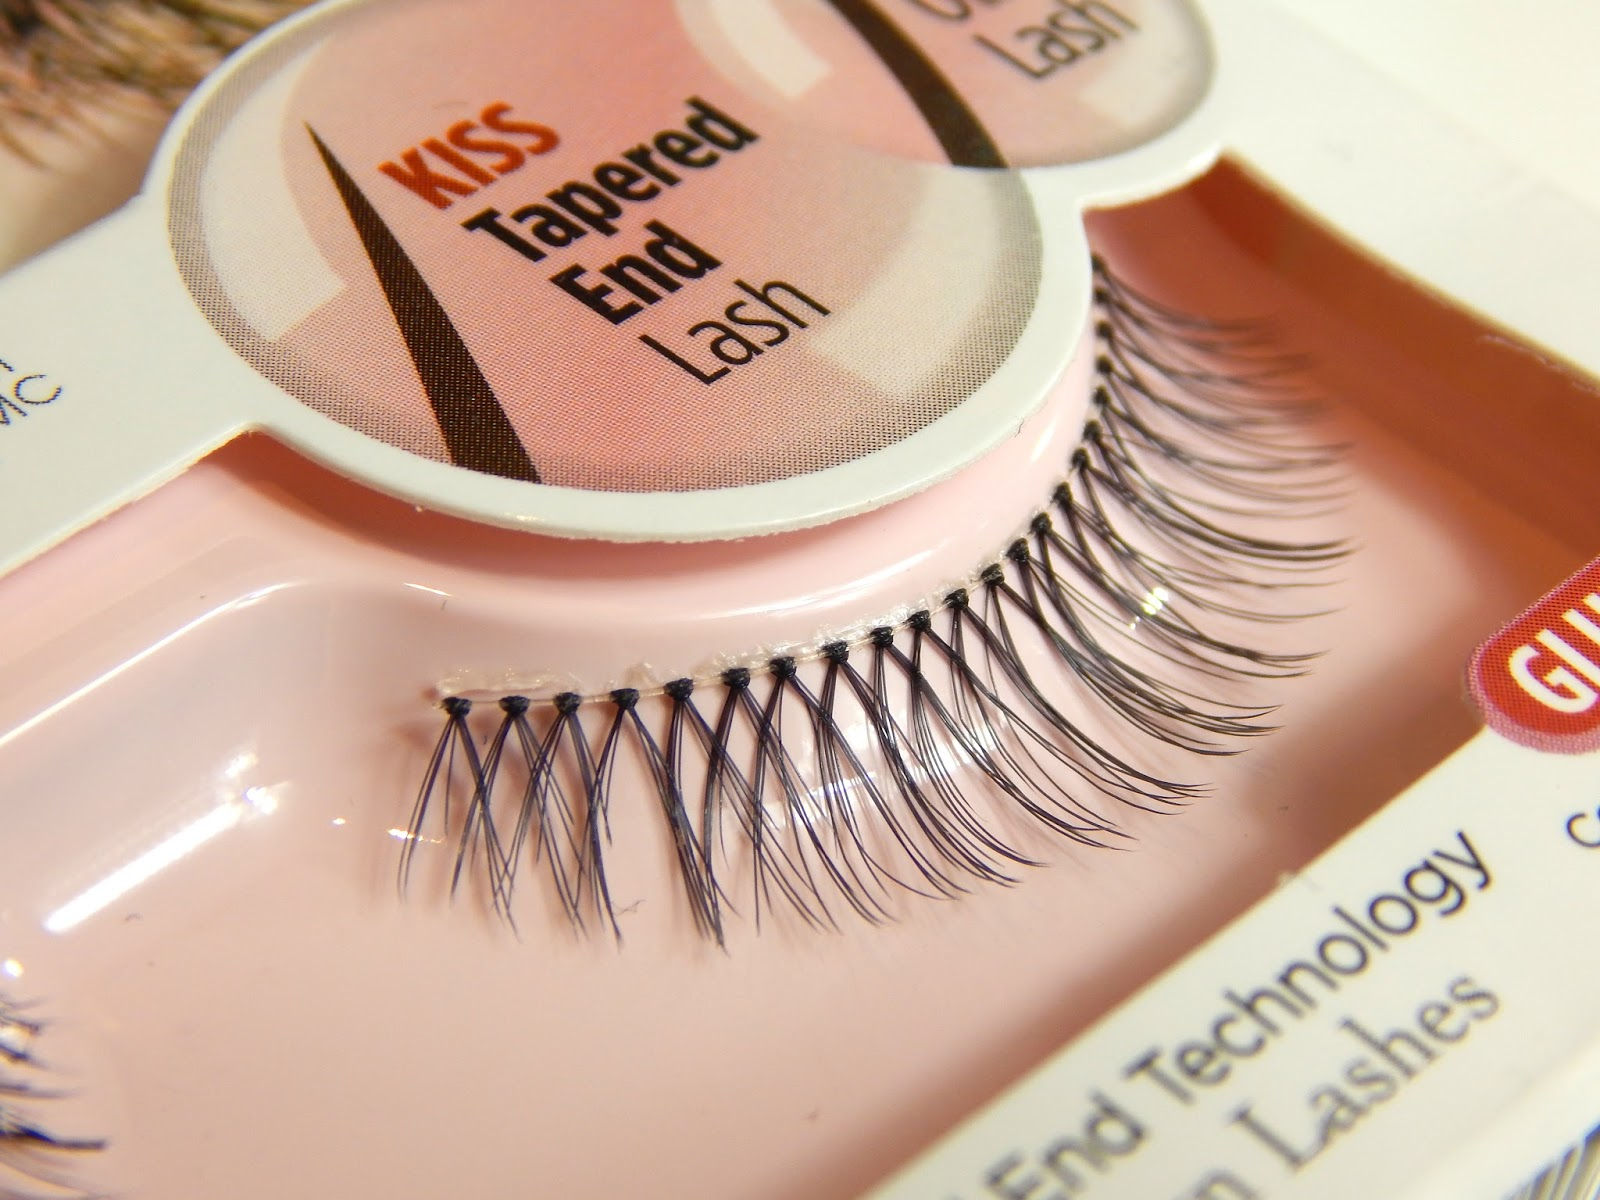 Kiss Vamp Lashes Superdrug